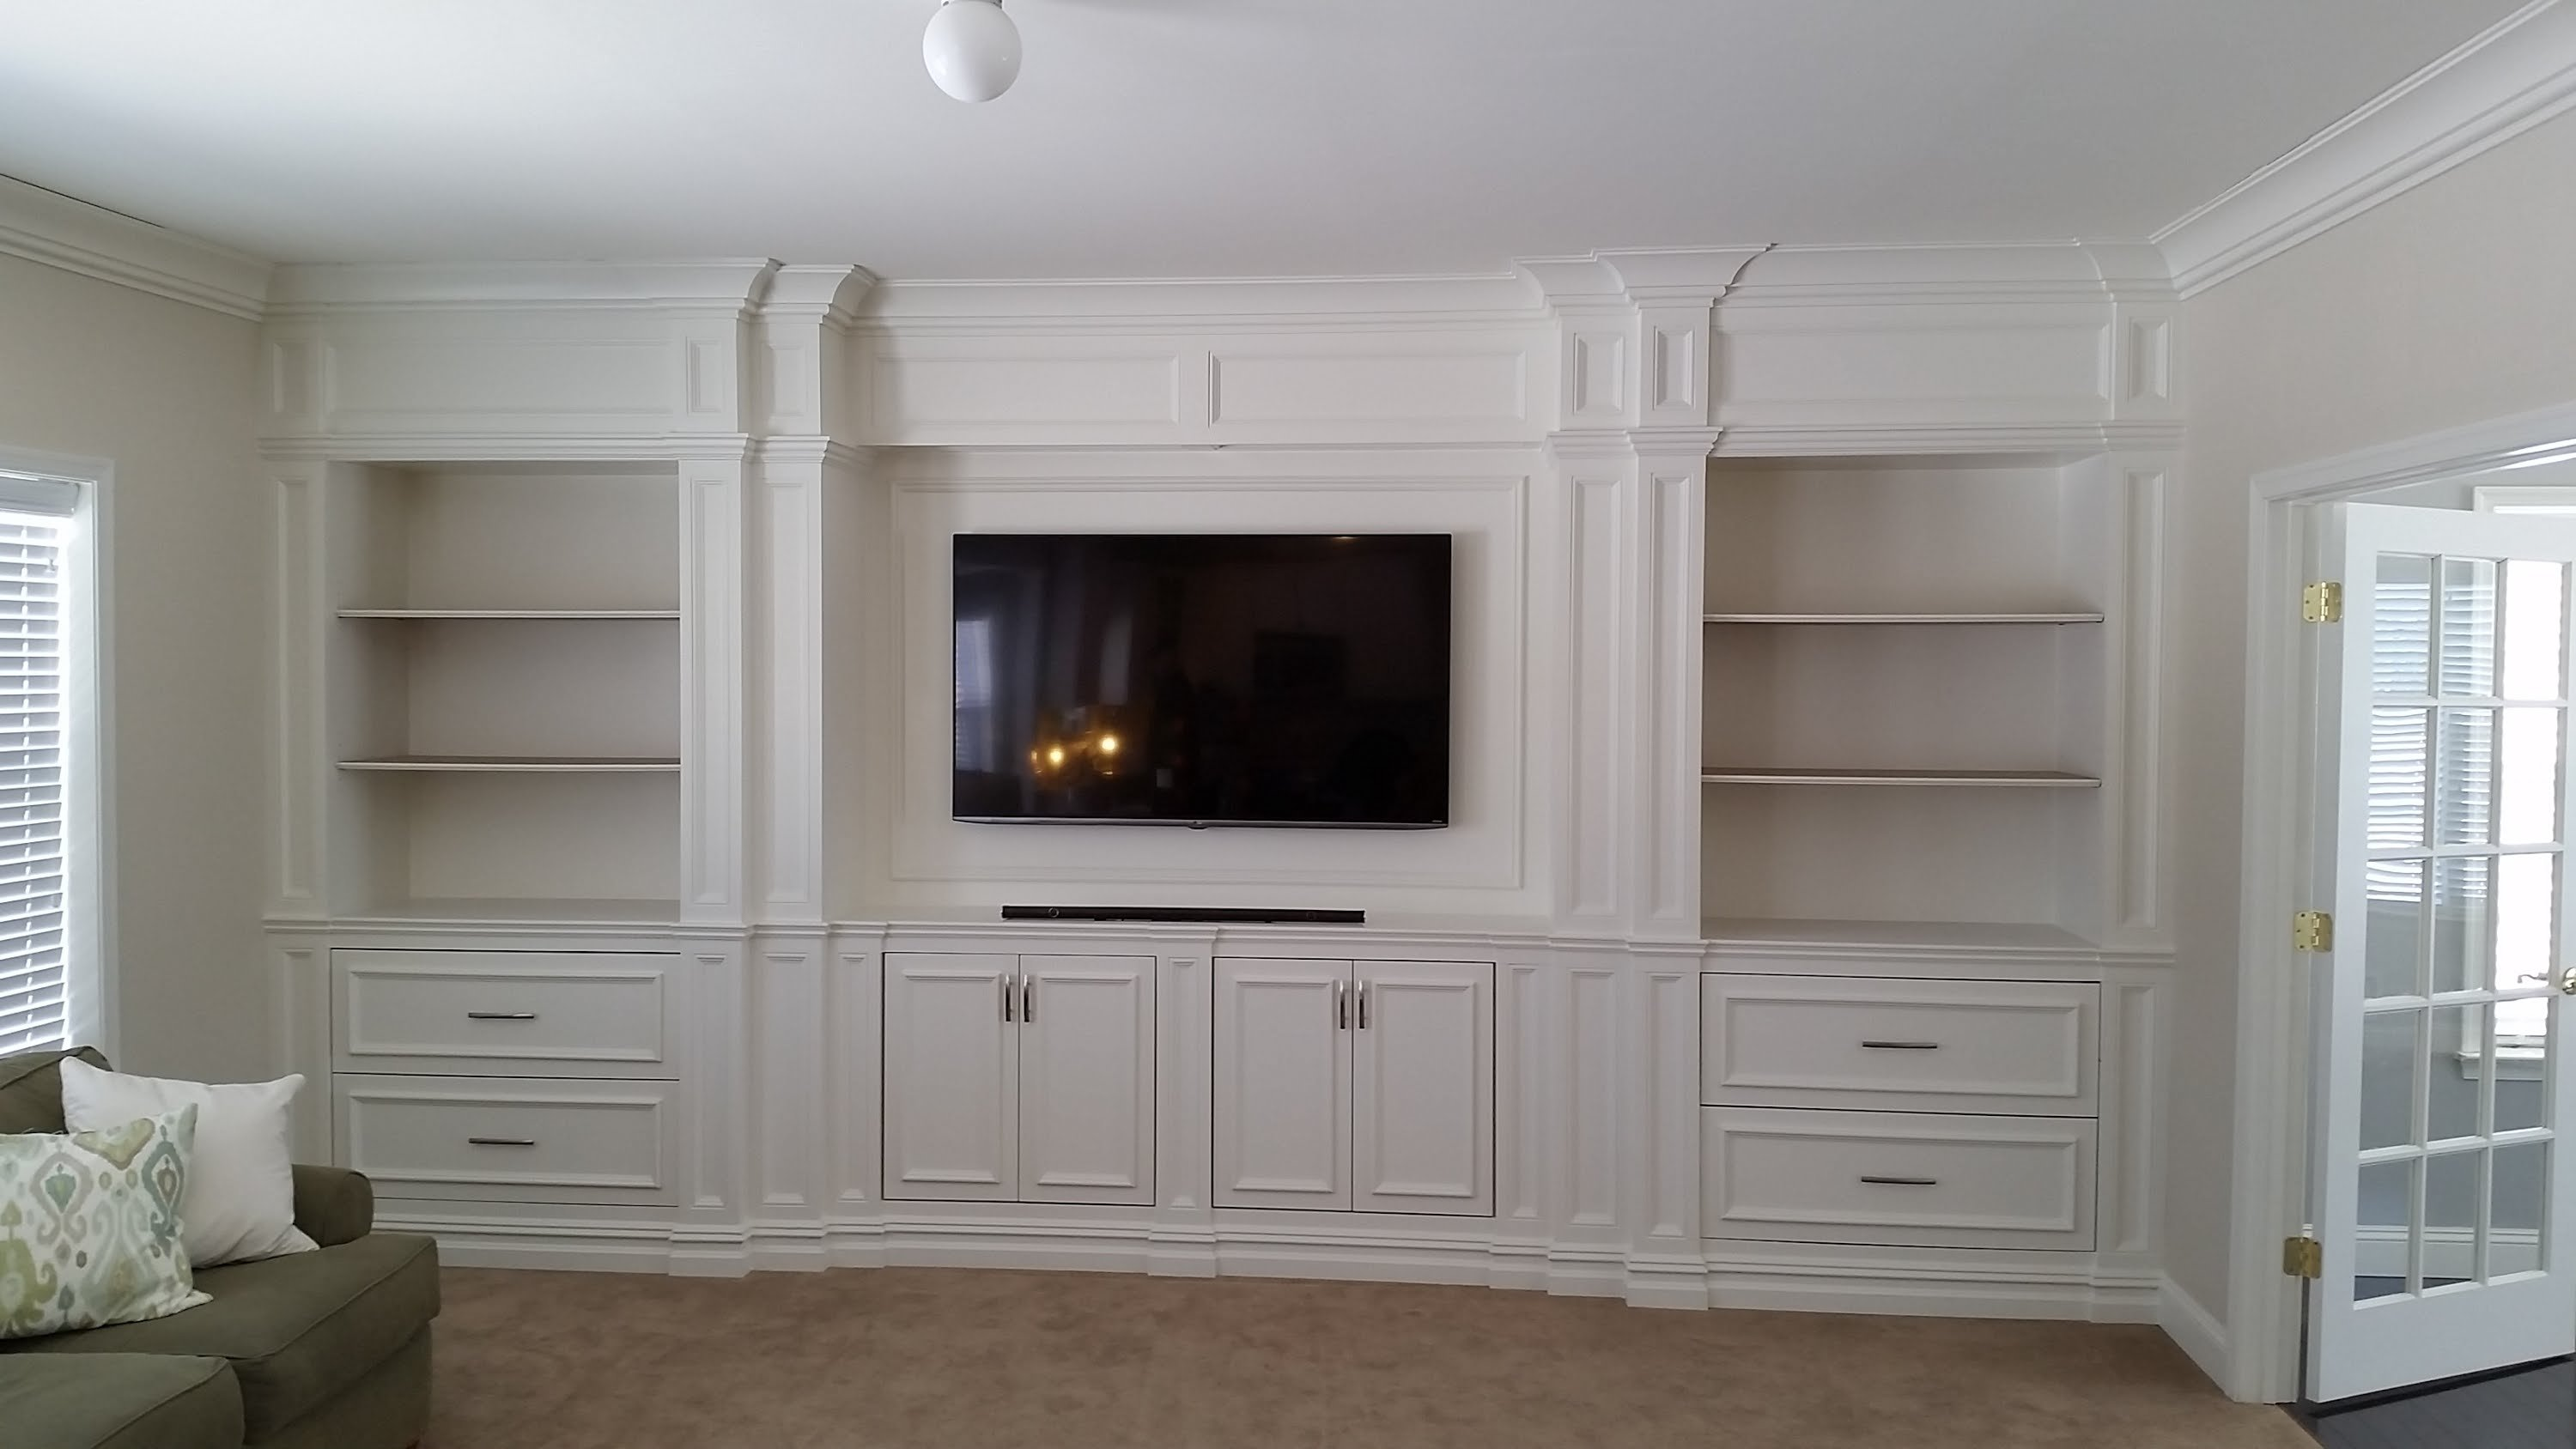 10 Awesome Built In Entertainment Center Ideas wall units built in entertainment centers ideas entertainment